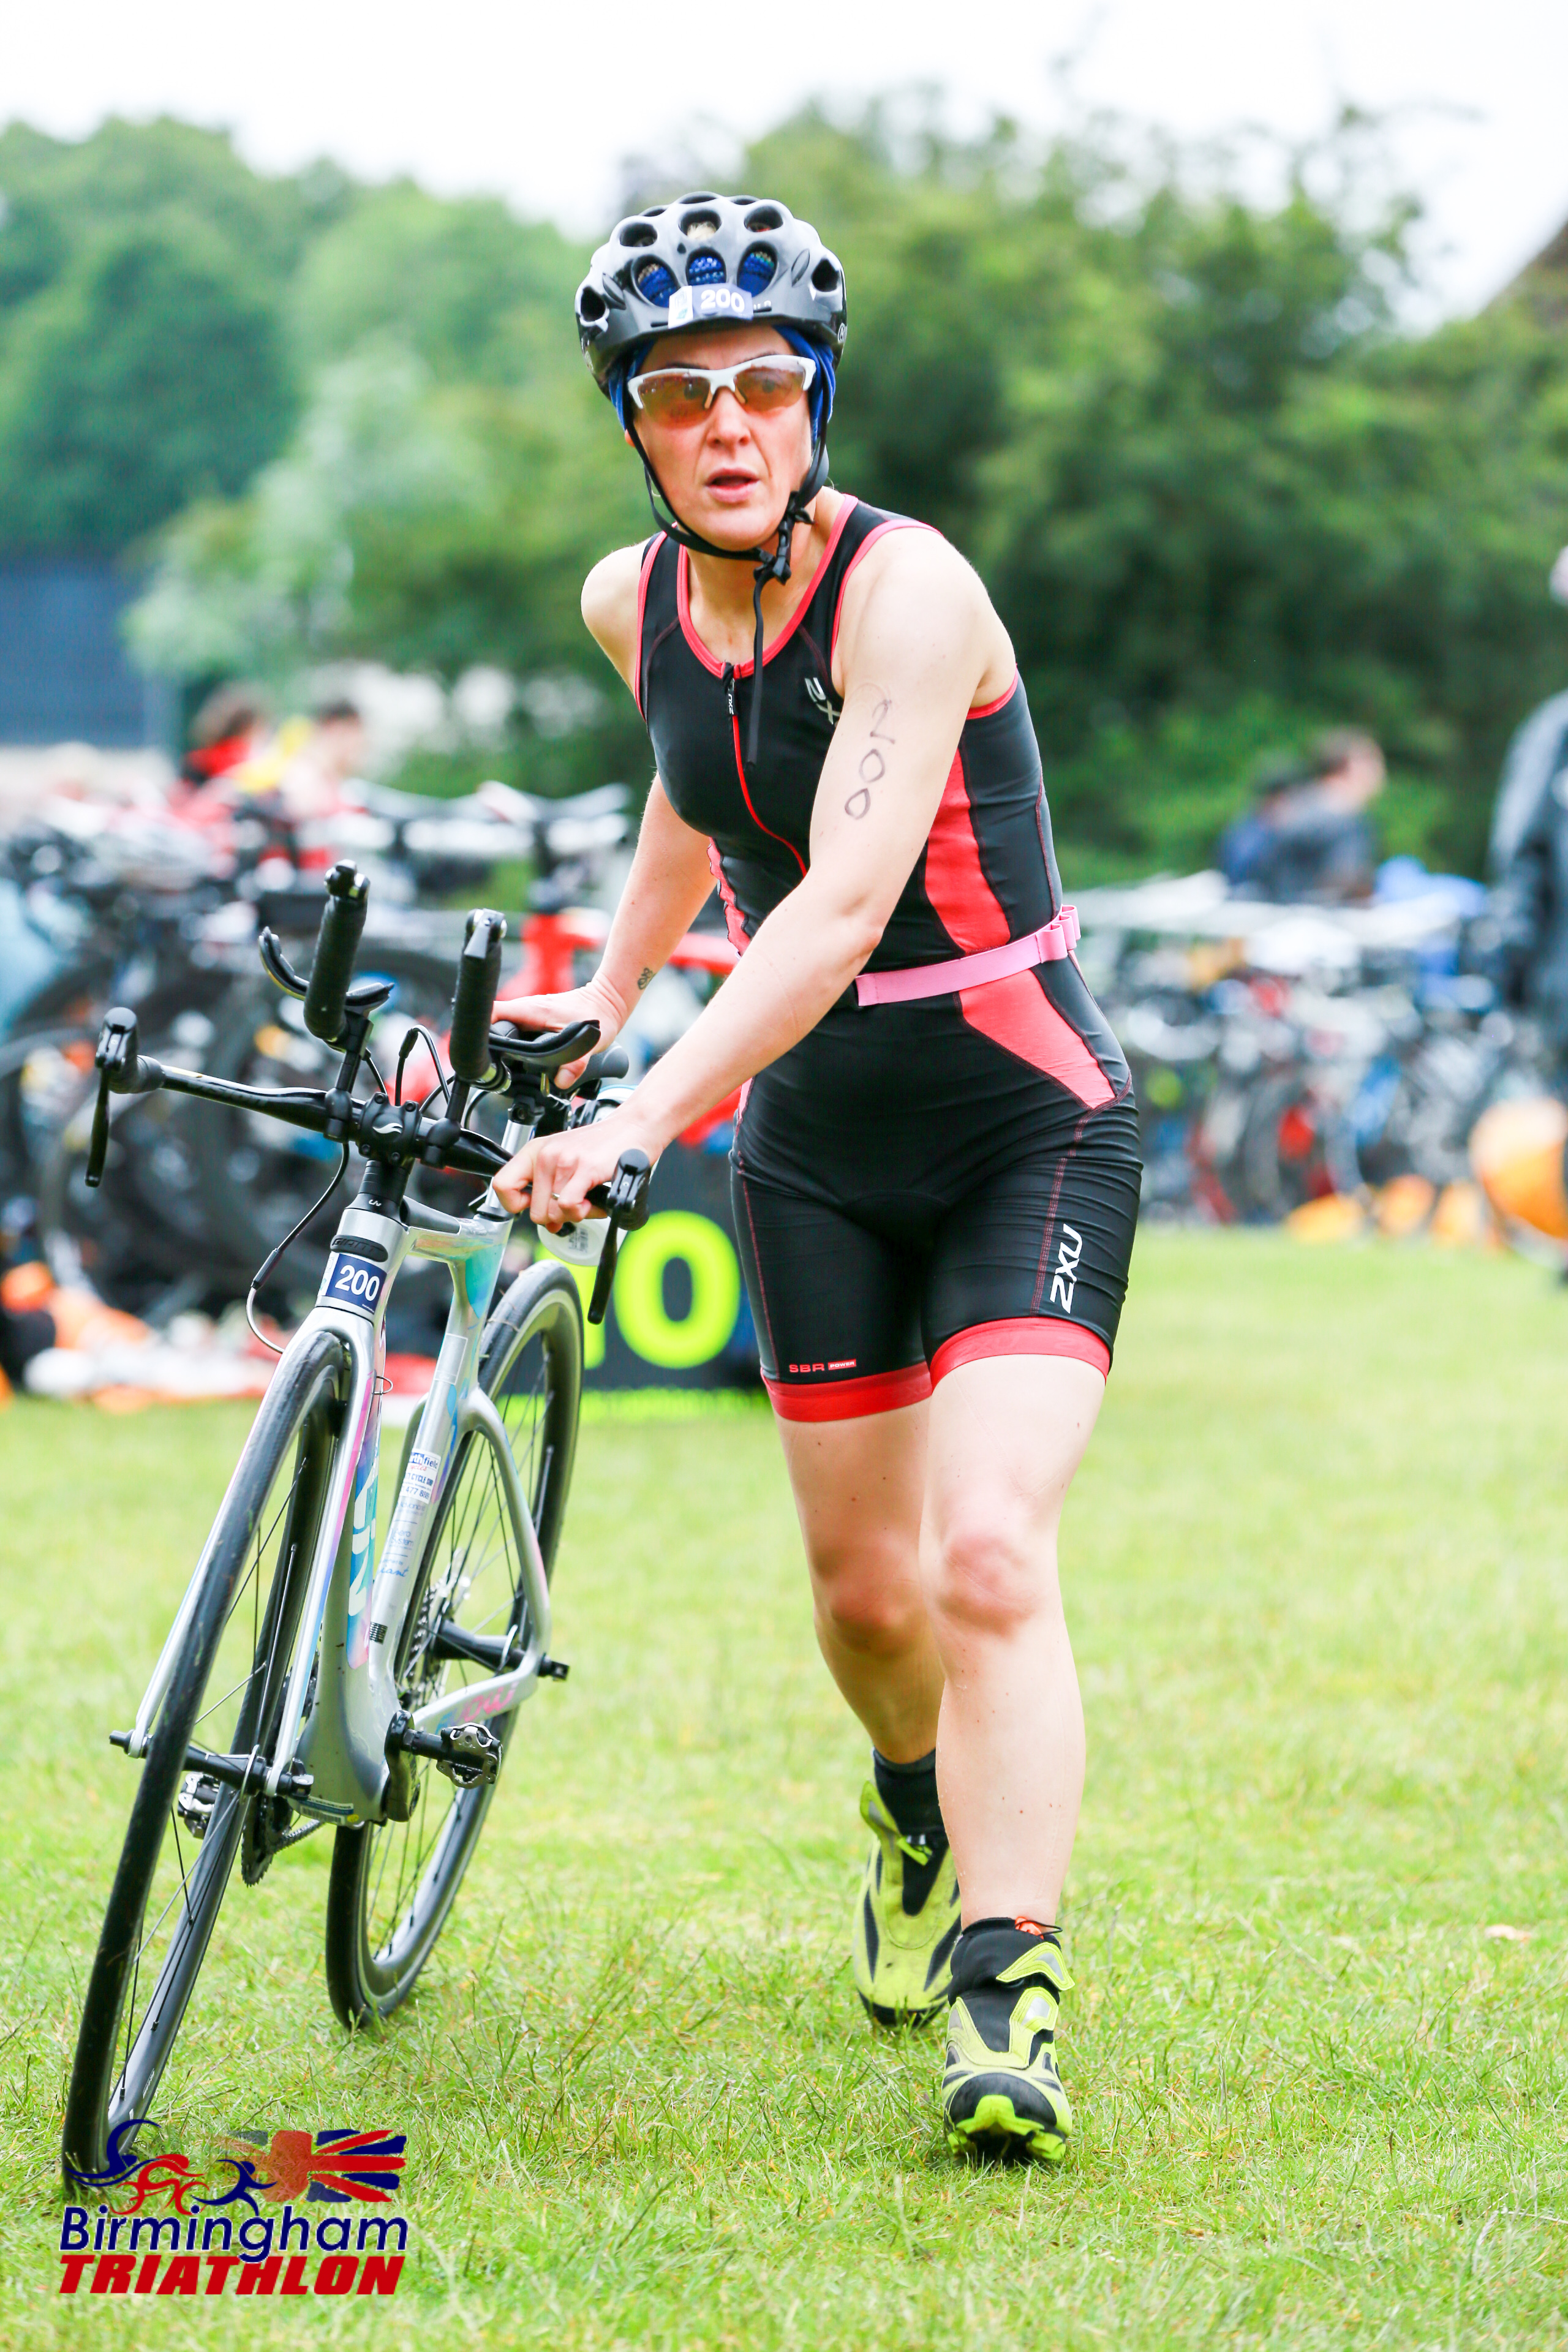 Birmingham_Triathlon_2019-Transition-230